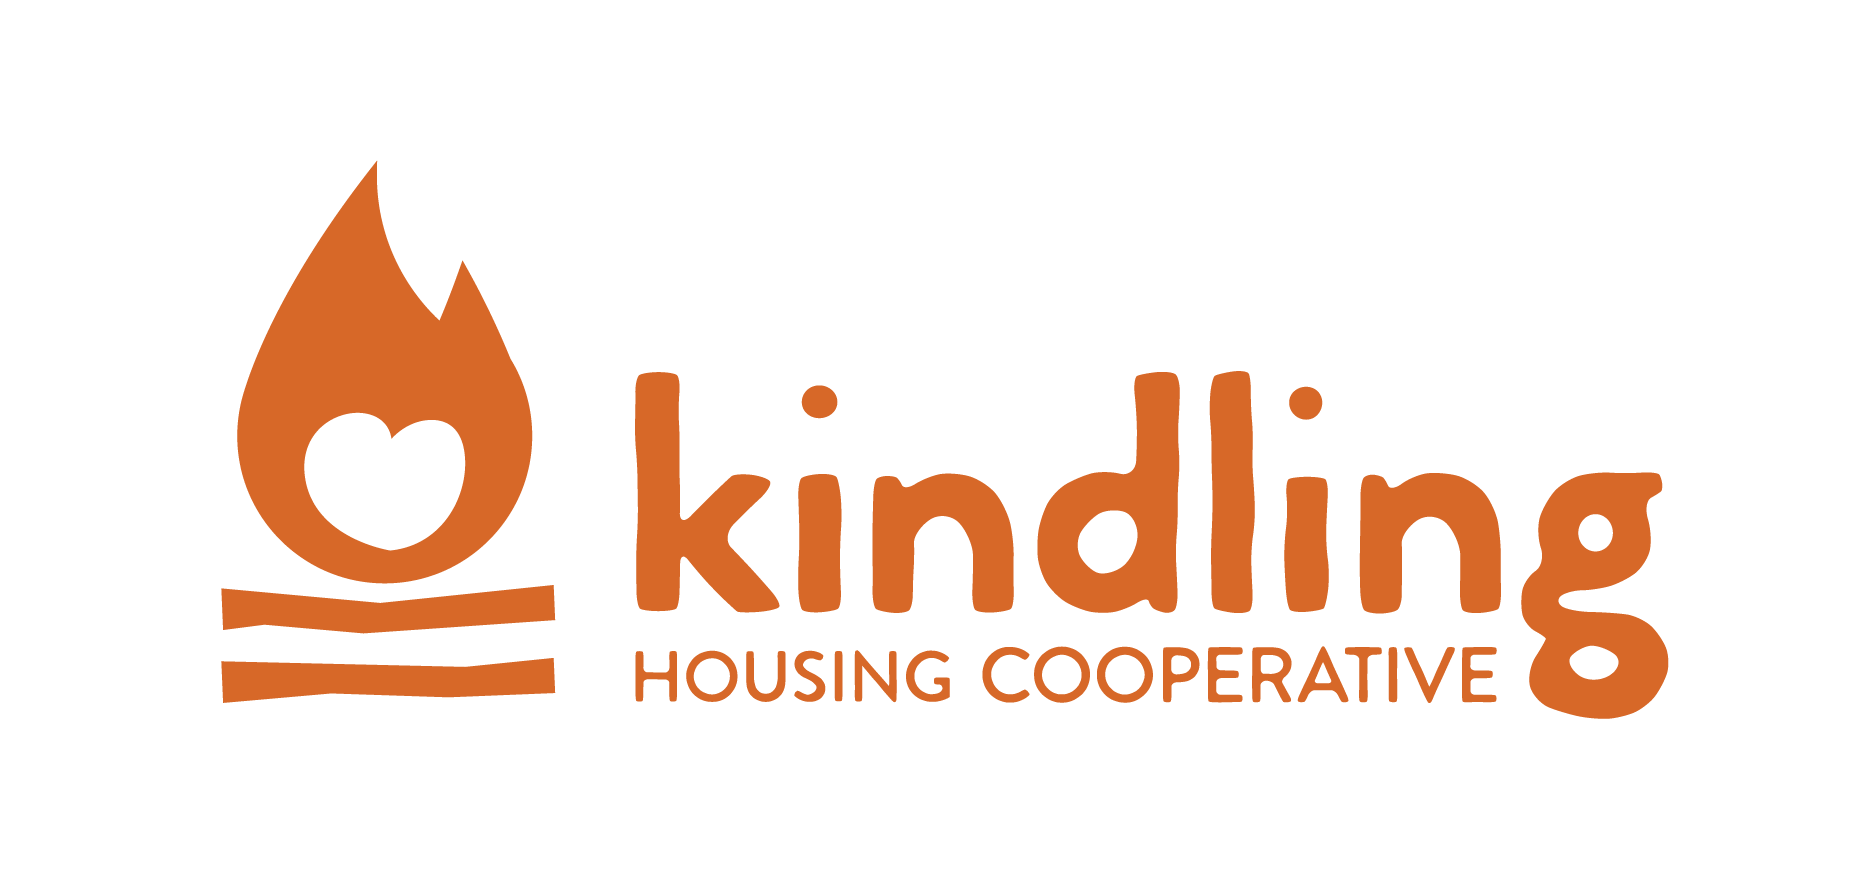 Kindling Housing Co-op